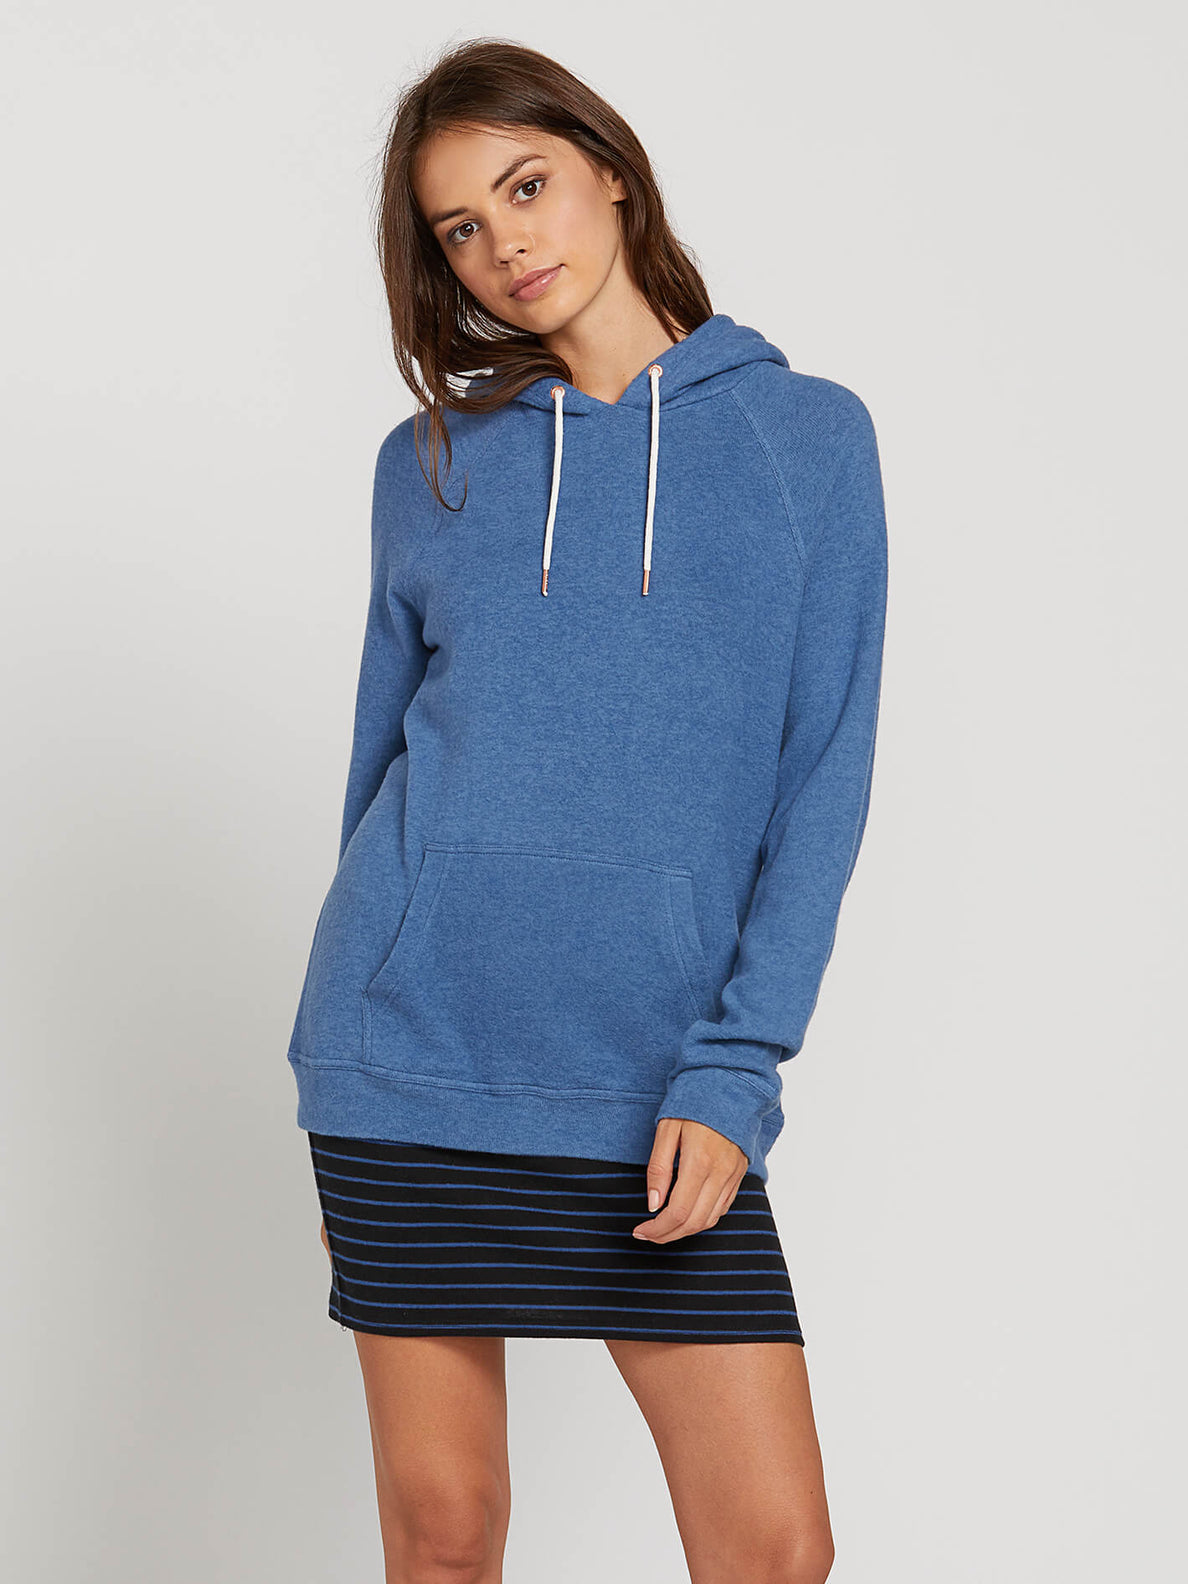 Lived In Lounge Hoodie In Blue Drift, Front View